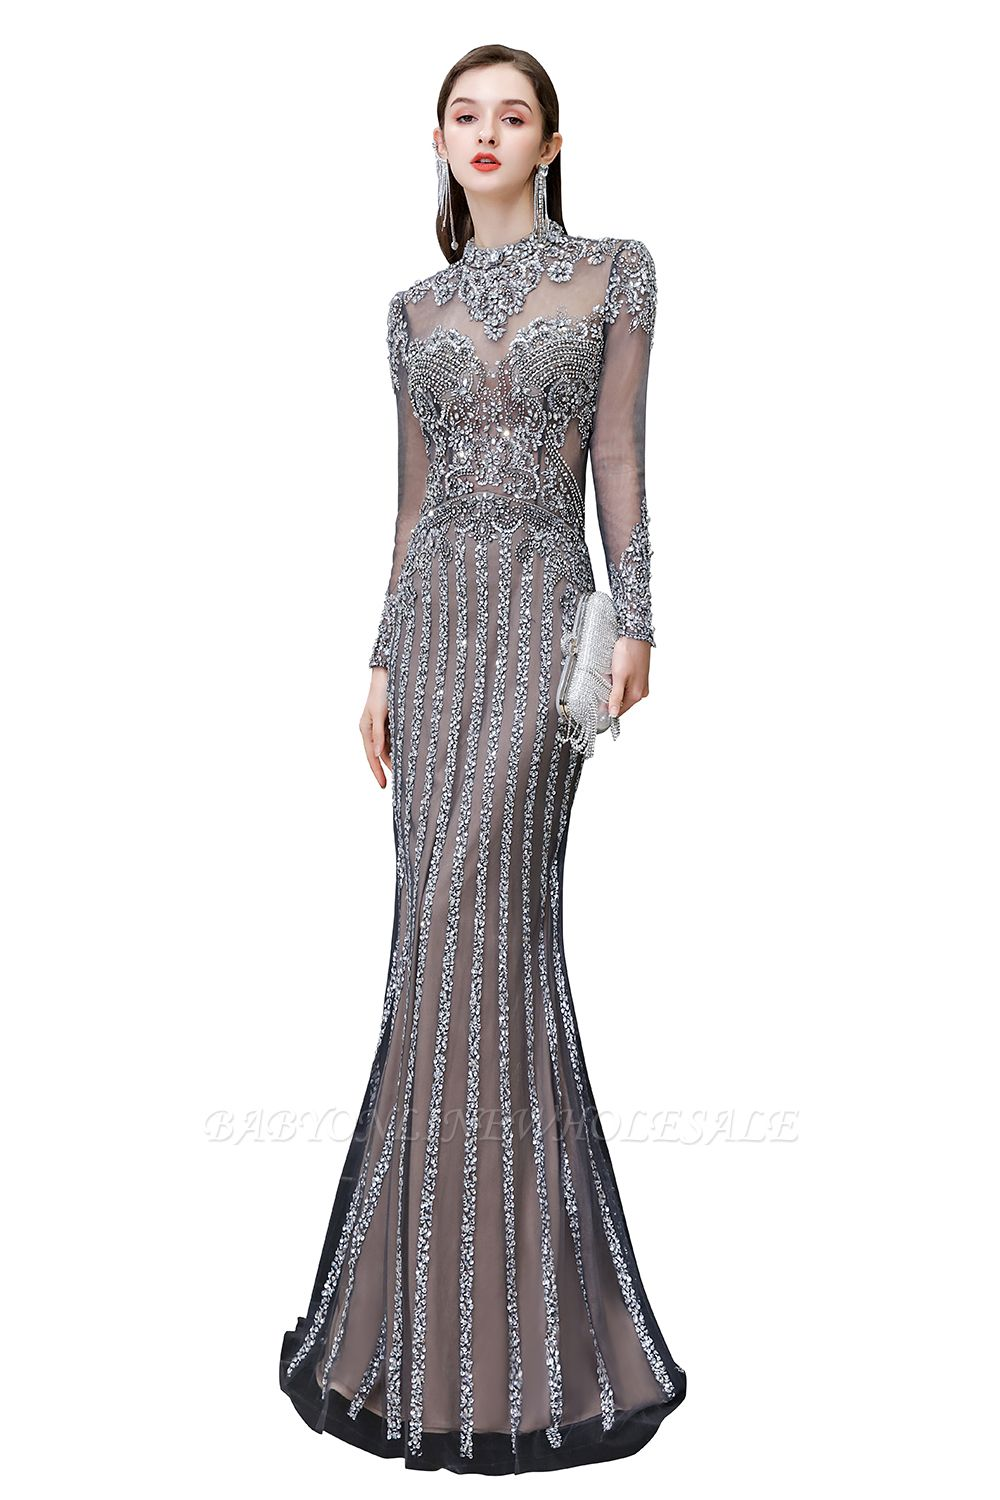 Luxury Sparkle Cap sleeves High neck Beads Long Prom Dresses